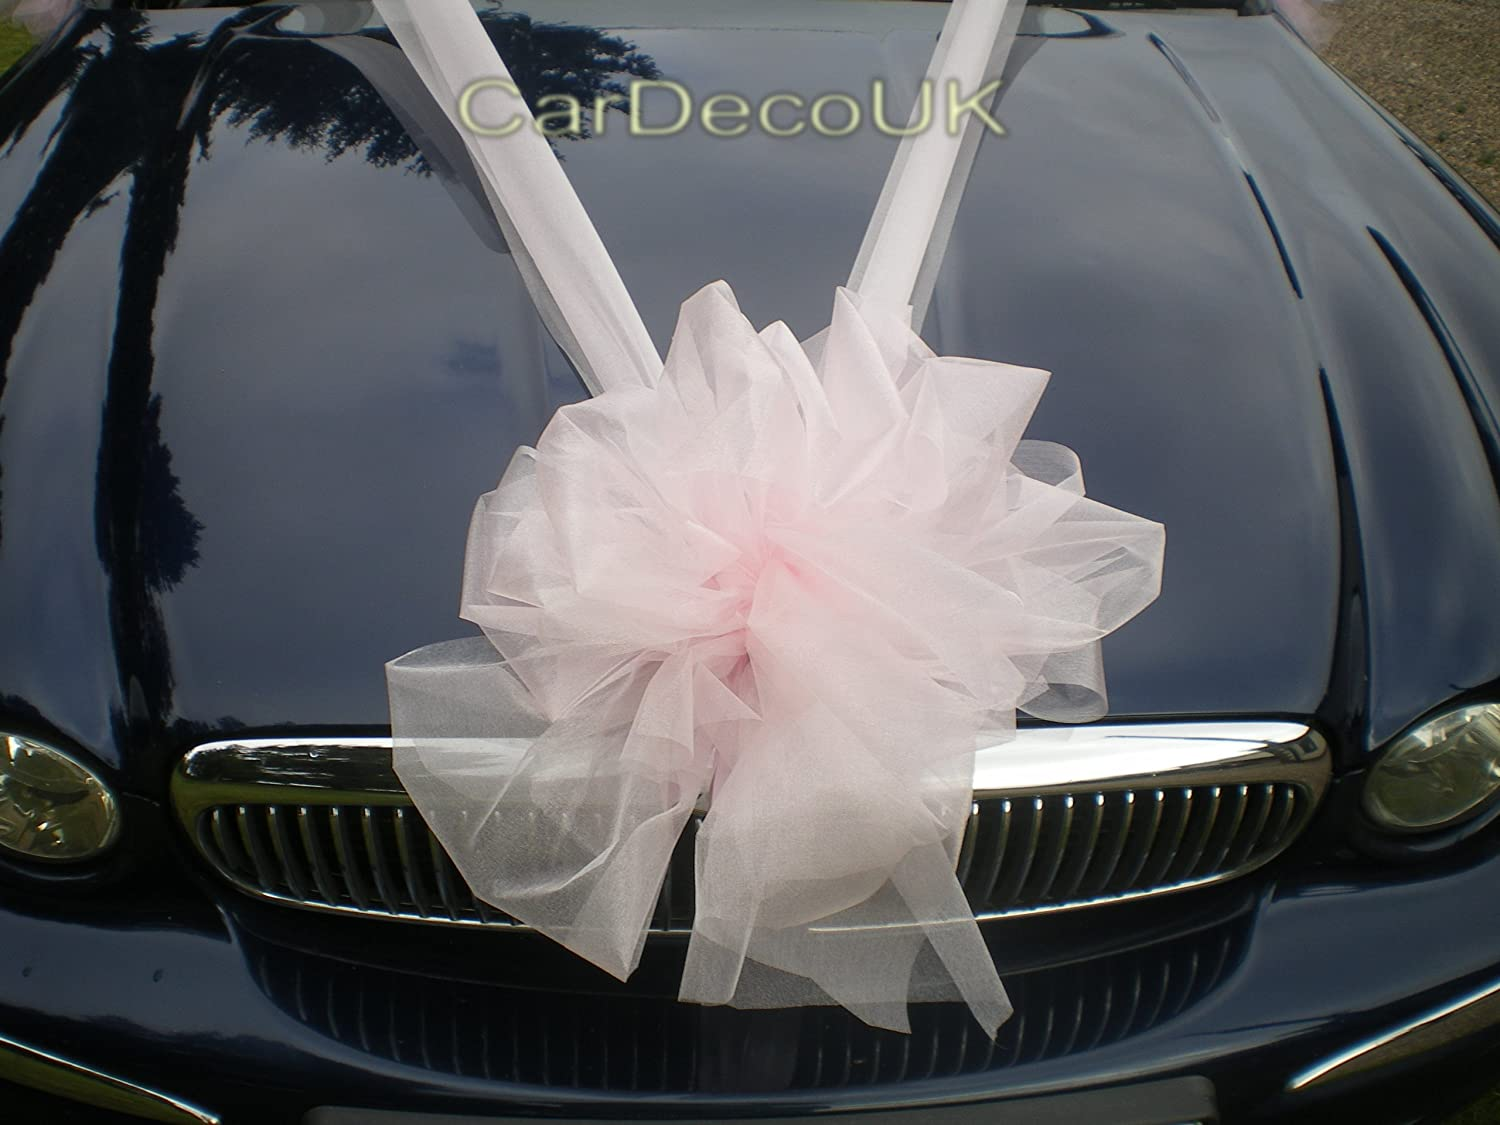 Wedding car decorations uk choice image wedding decoration ideas luxury wedding car organza ribbon bows decoration kit pink ready luxury wedding car organza ribbon bows junglespirit Gallery